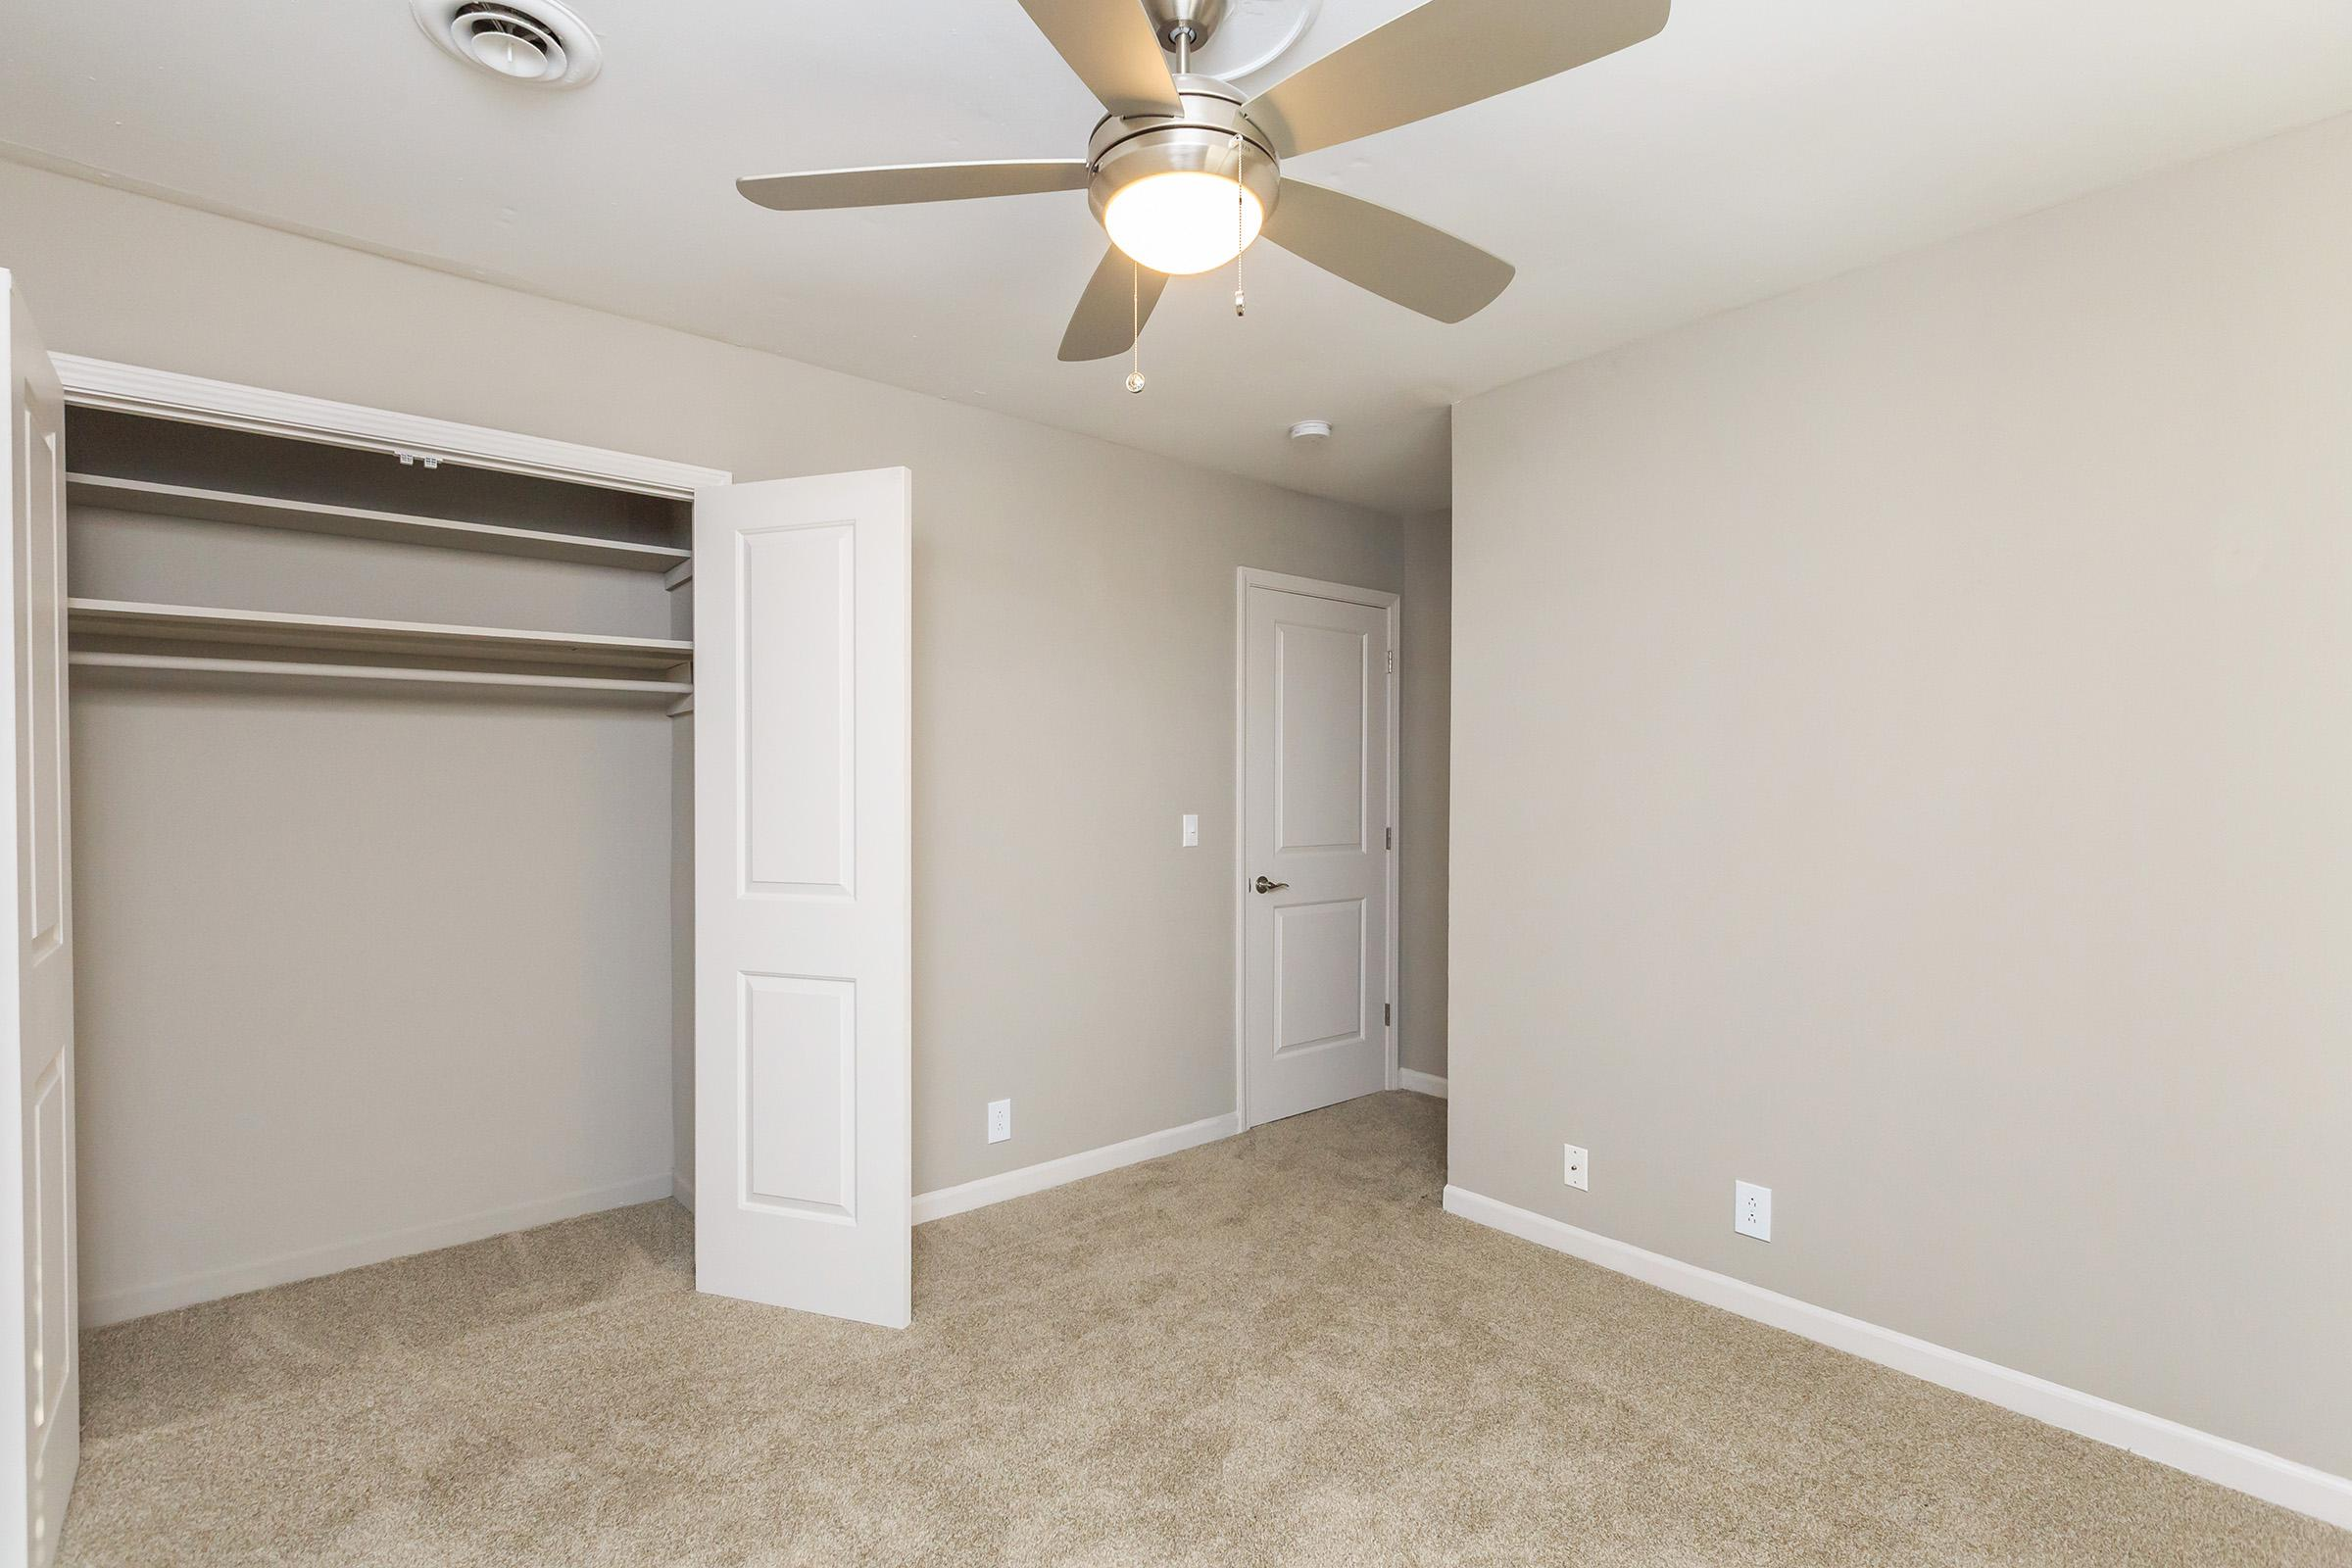 Bedroom with ceiling fan at Colony House in TN